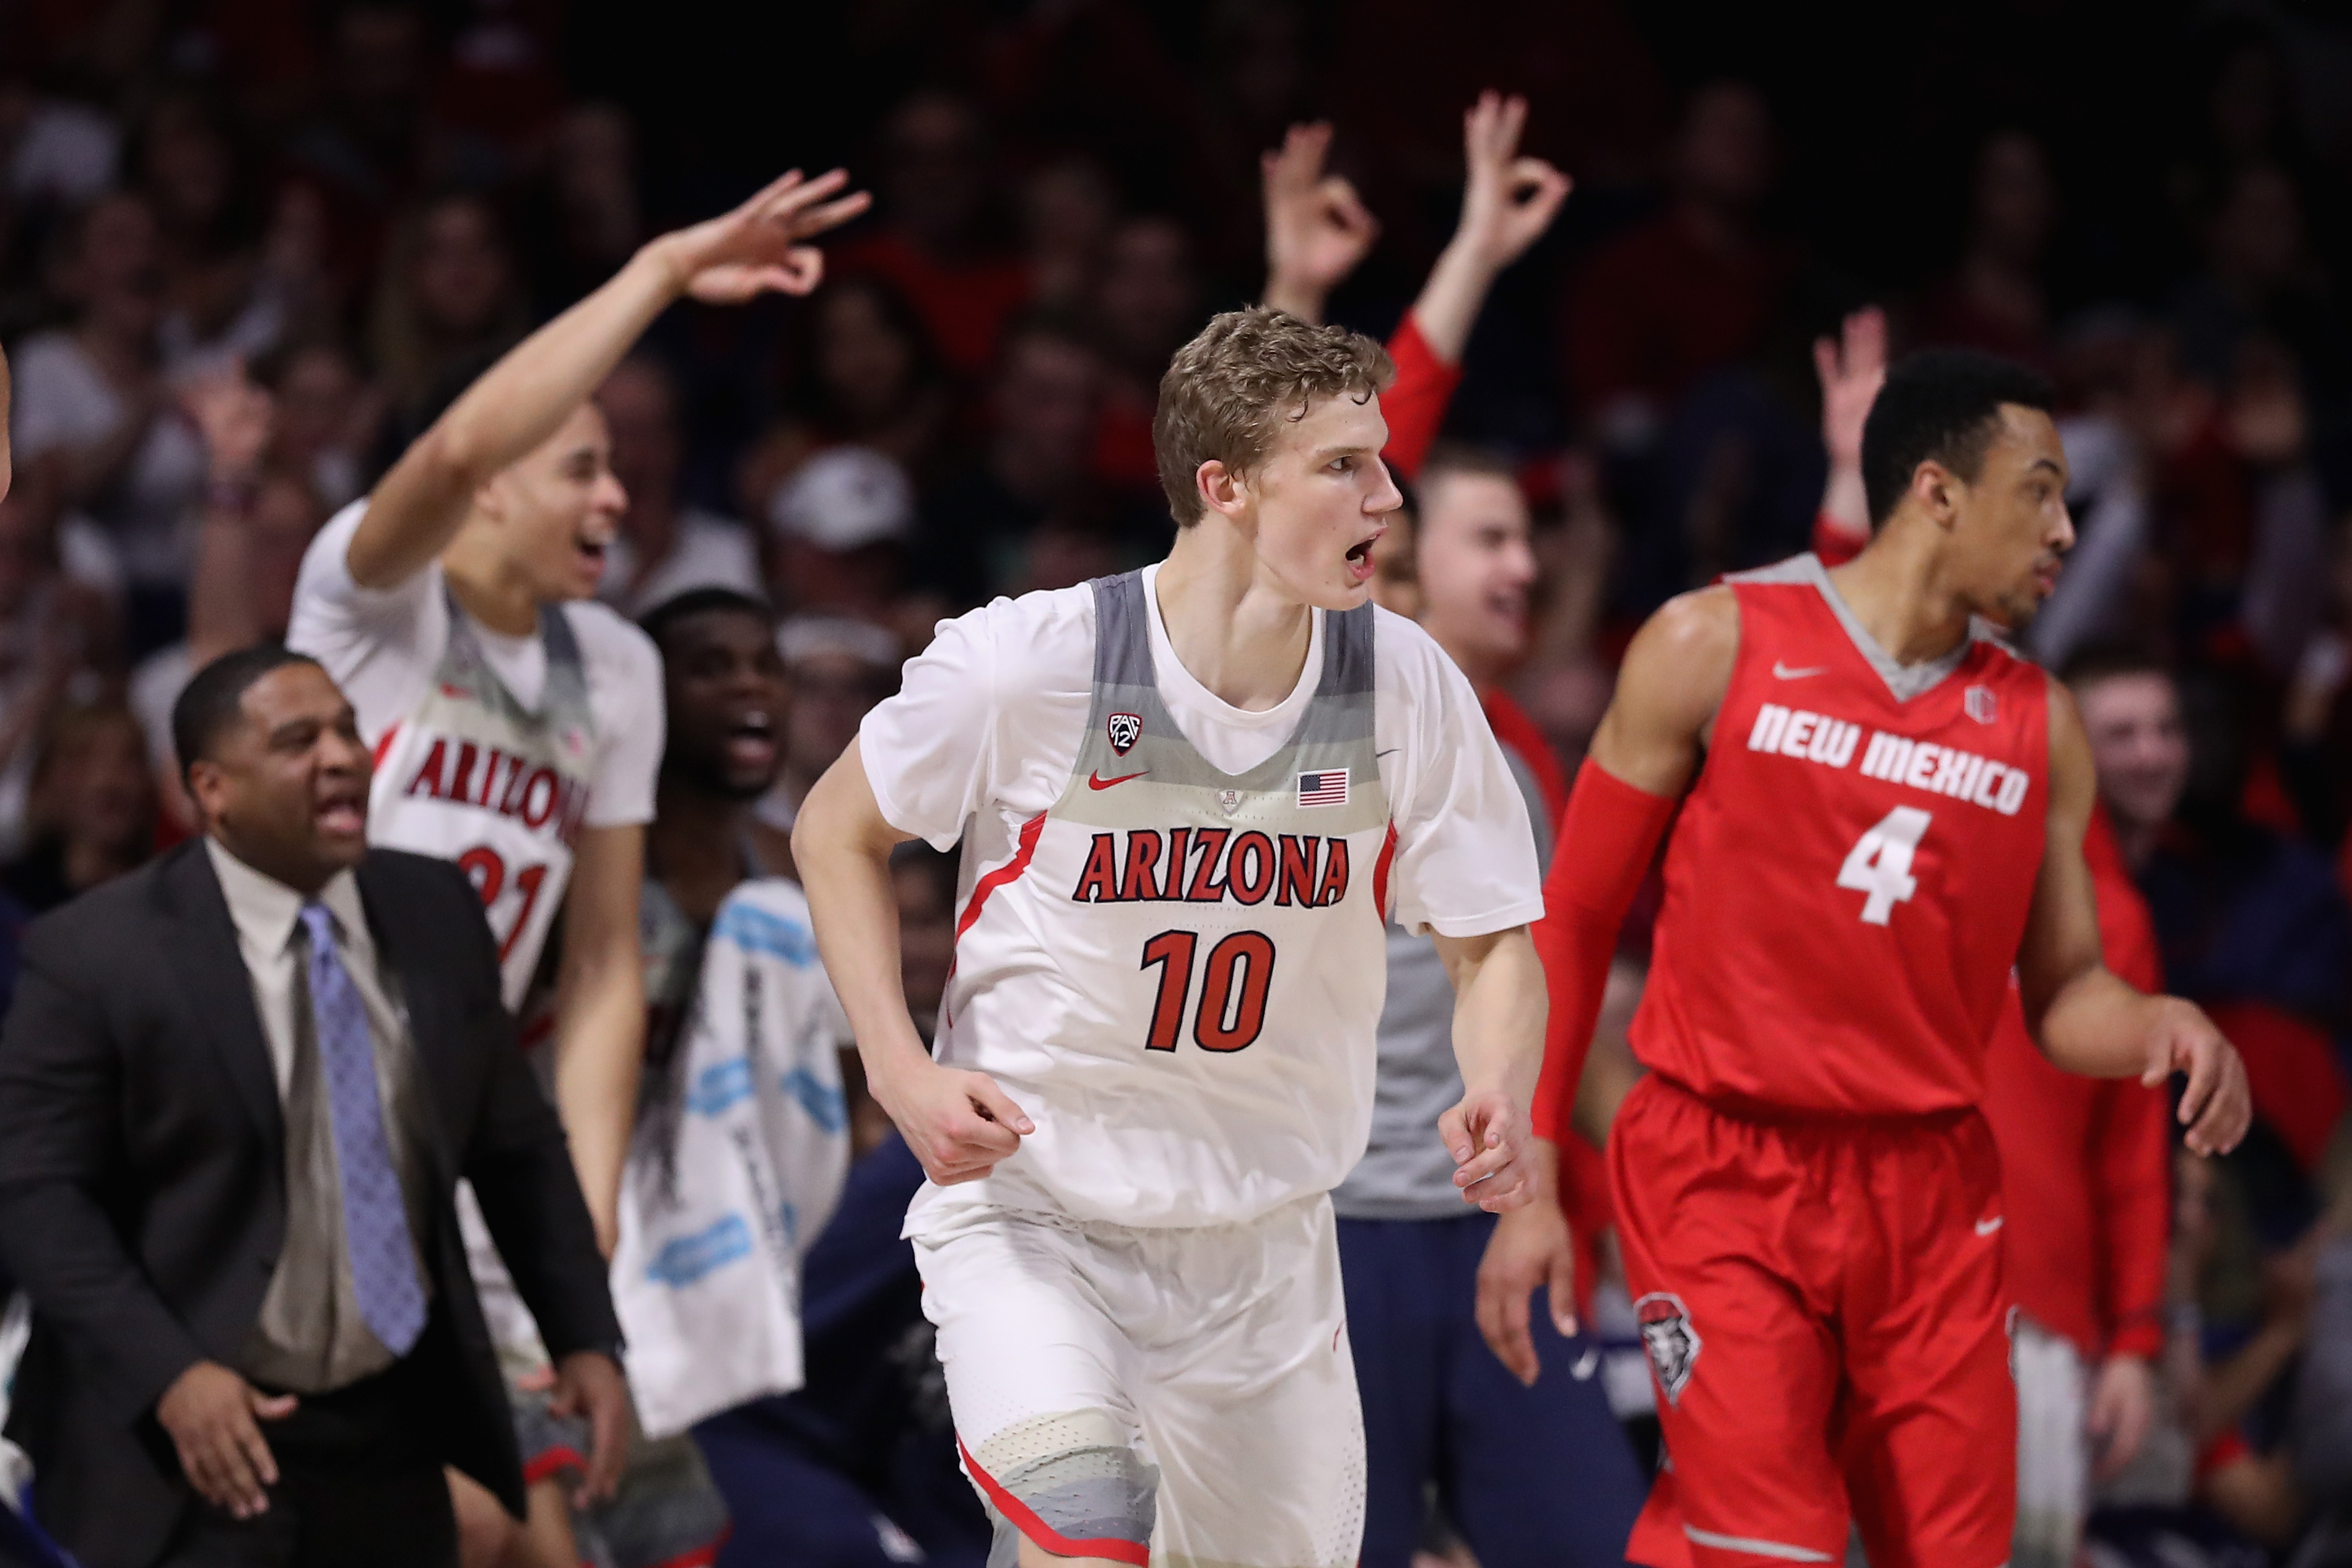 TUCSON, AZ - DECEMBER 20: Lauri Markkanen #10 of the Arizona Wildcats reacts after hitting a three point shot against the New Mexico Lobos during the second half of the college basketball game at McKale Center on December 20, 2016 in Tucson, Arizona. (Photo by Christian Petersen/Getty Images)